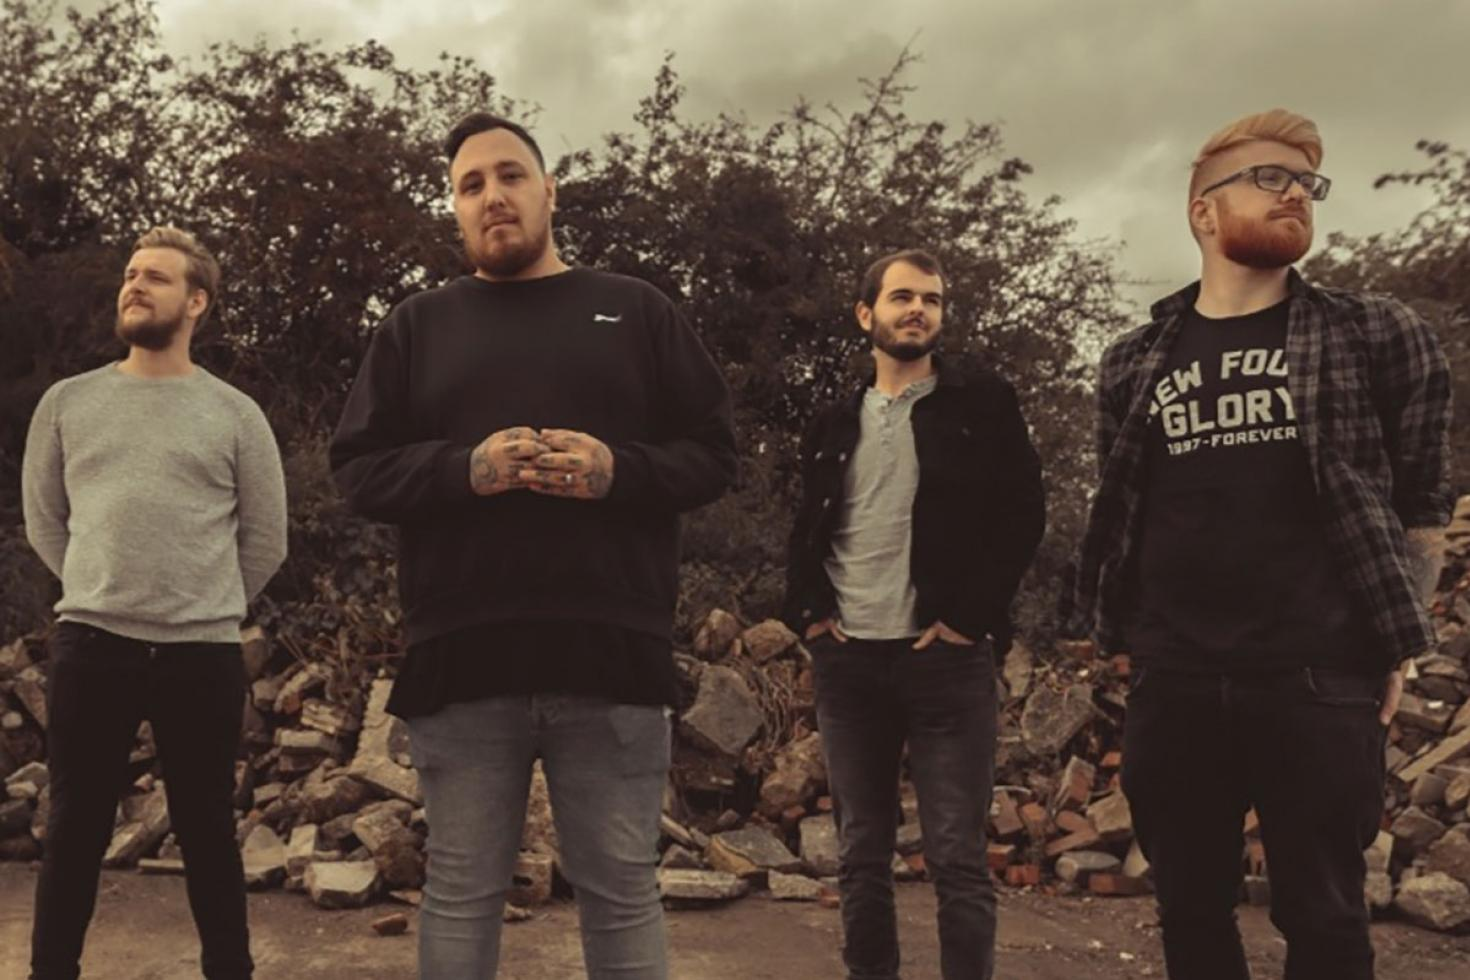 PREMIERE: Side Project share video for new single 'Sad Songs'